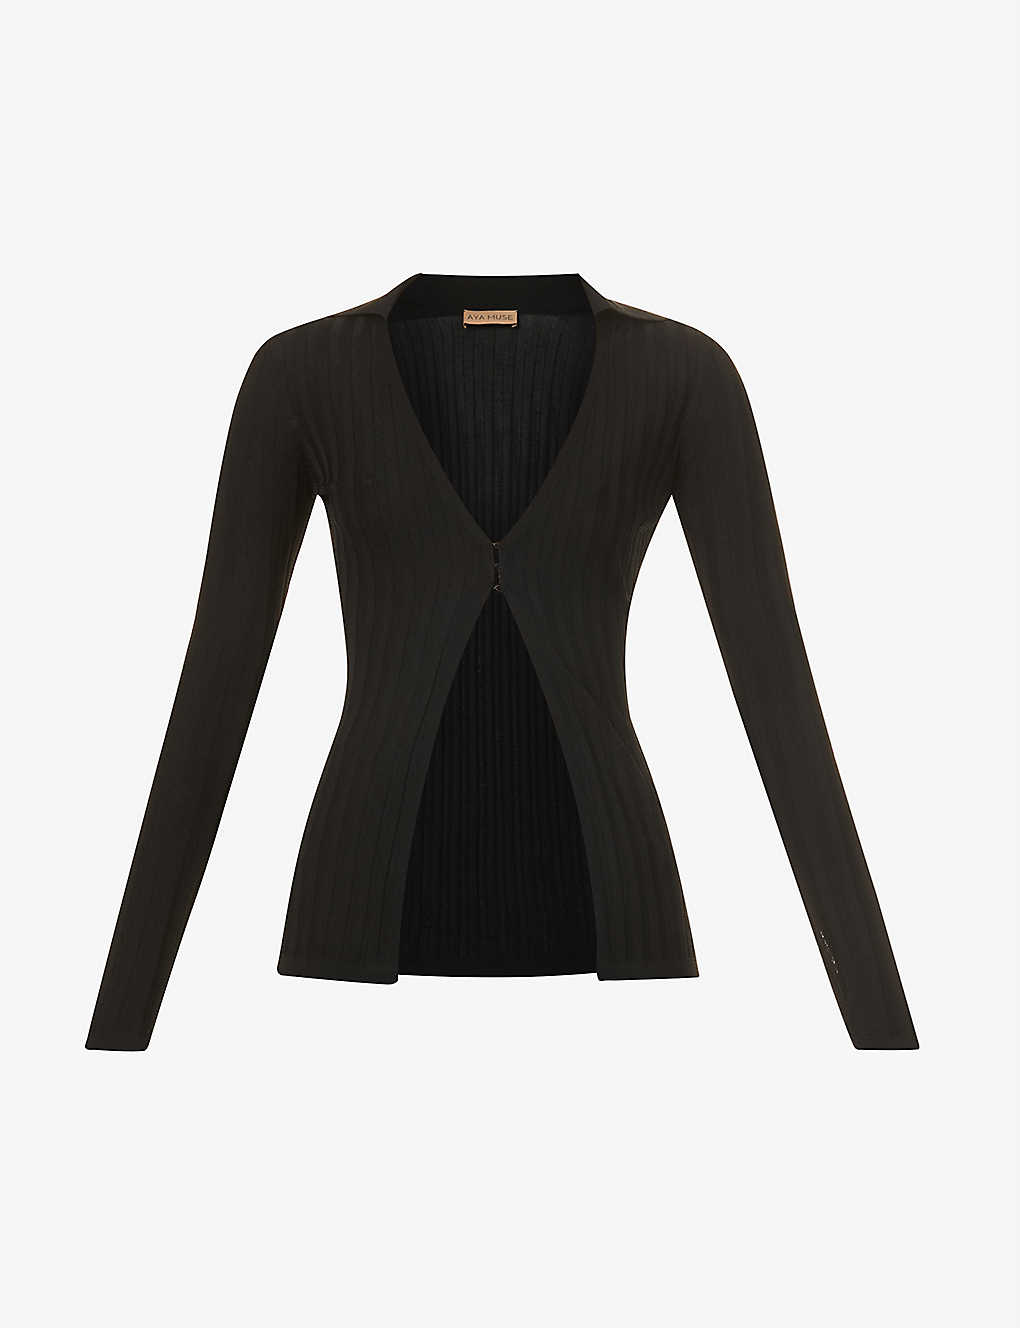 Remi open-front stretch-knit top by Aya Muse, available on selfridges.com for $250 Emily Ratajkowski Top Exact Product